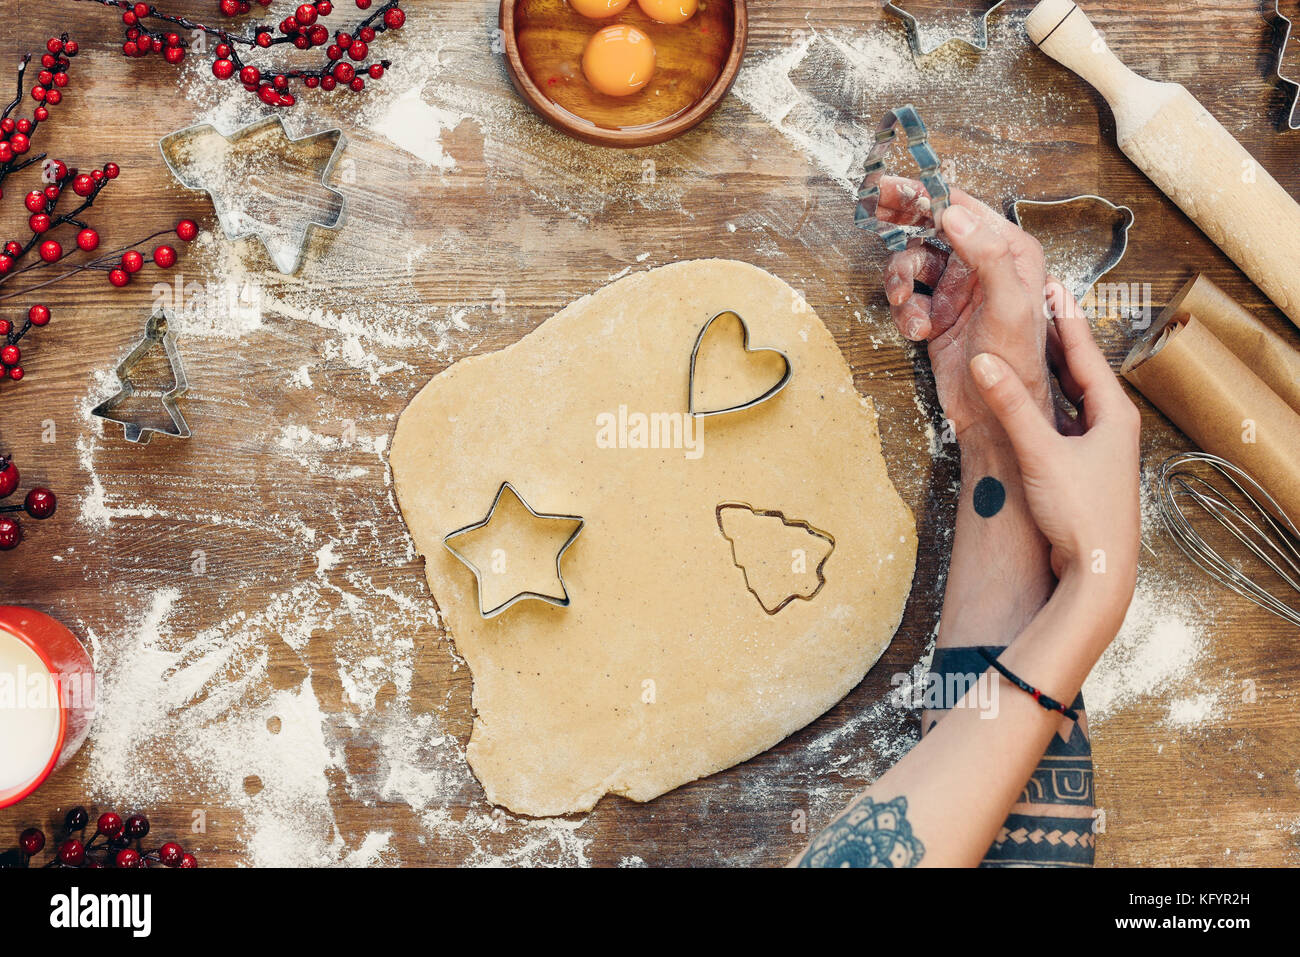 Couple cooking gingerbread cookies Photo Stock